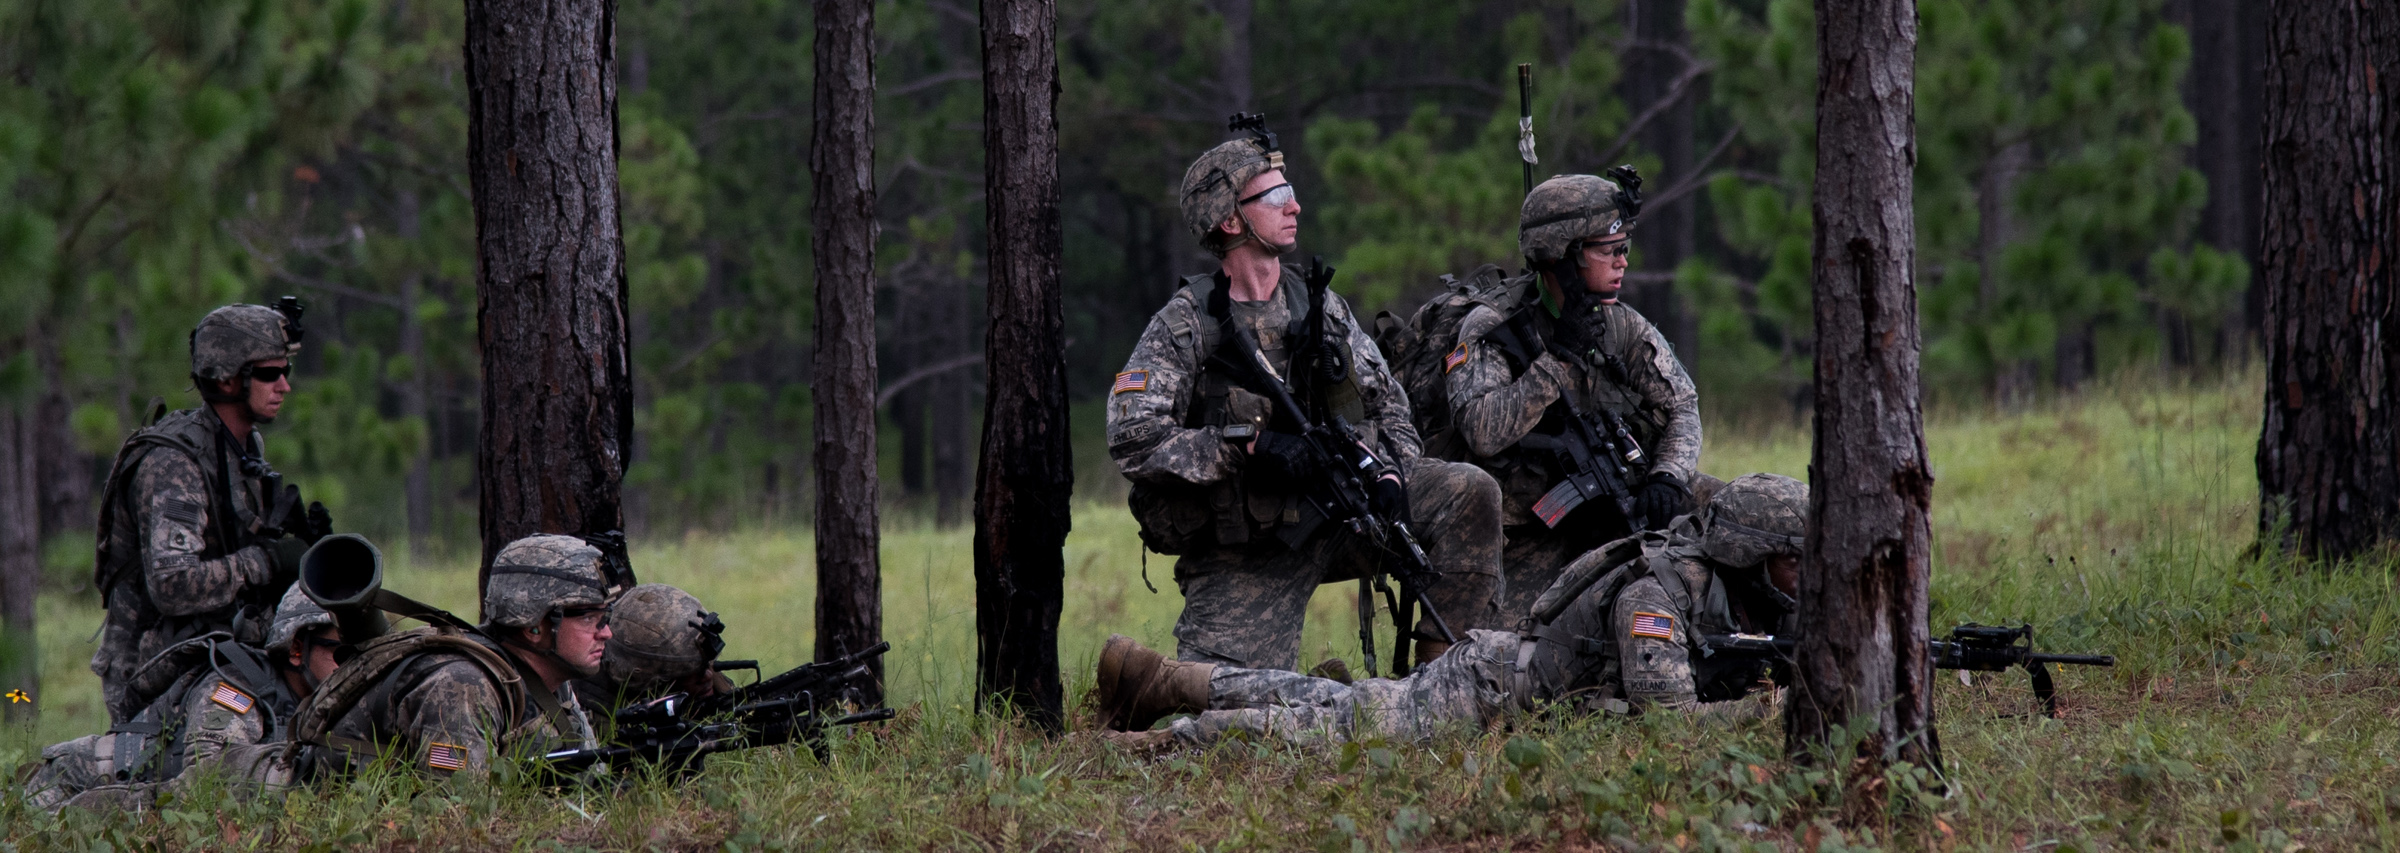 Header image- soldiers in forest- 138th Regional Training Institute page